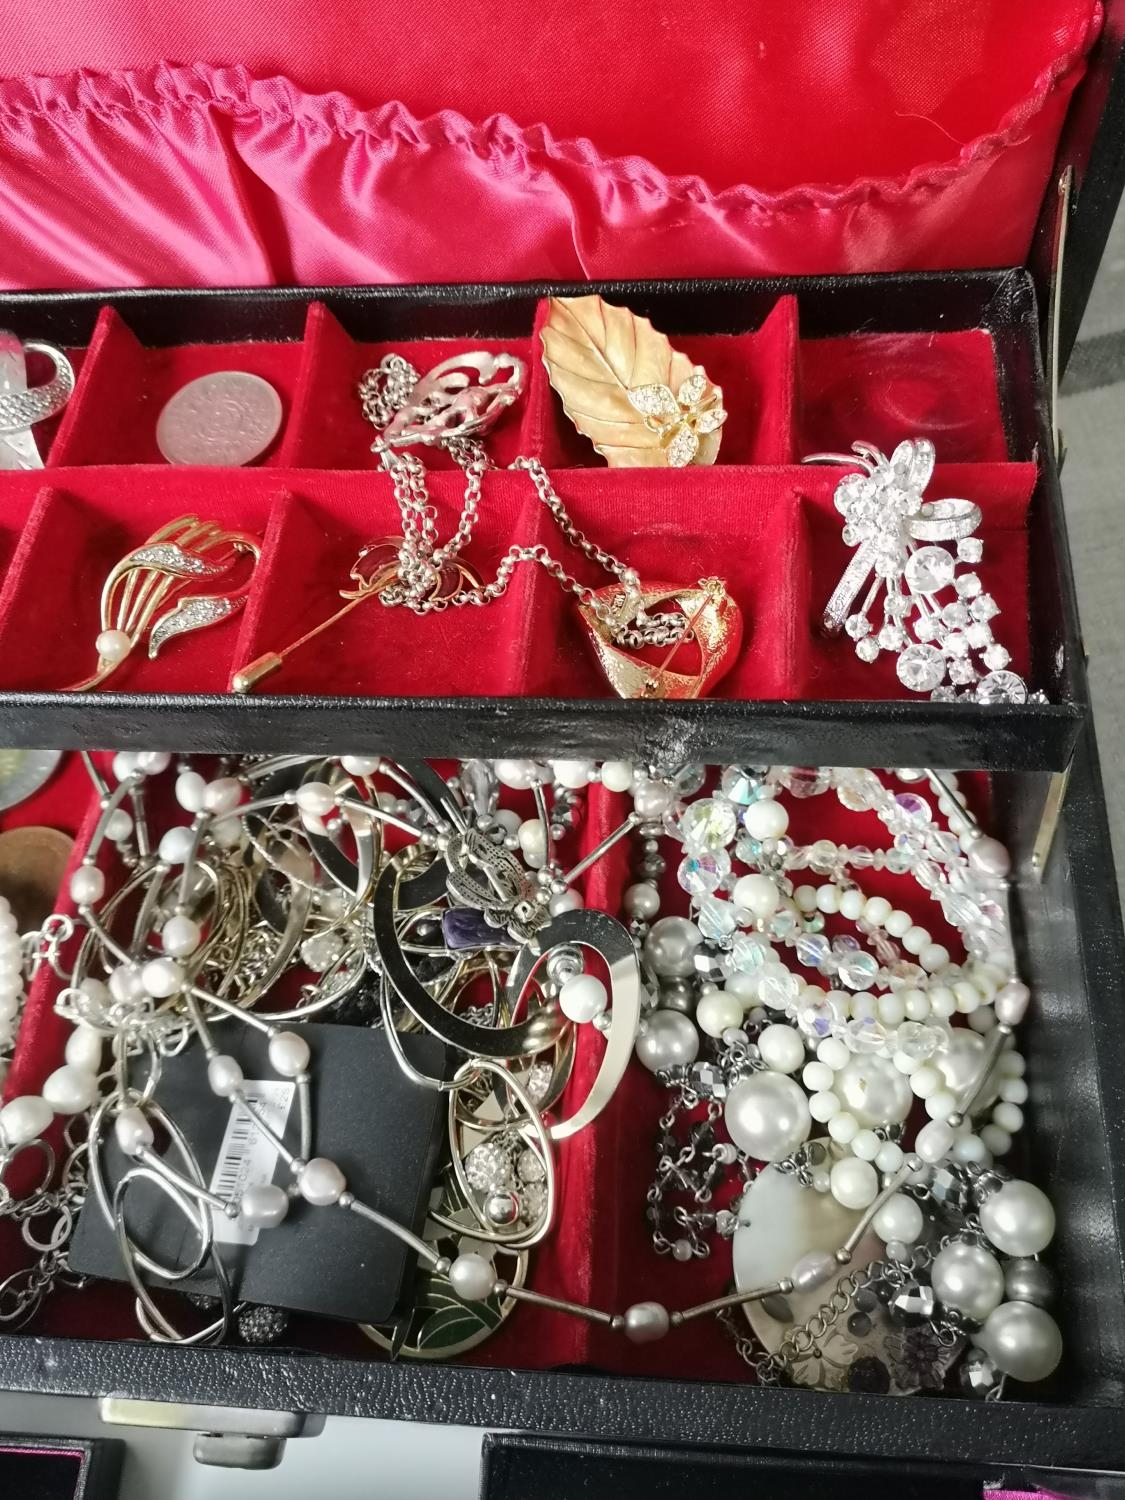 A Jewellery box containing a quantity of costume jewellery to include brooches, necklaces, - Image 2 of 3